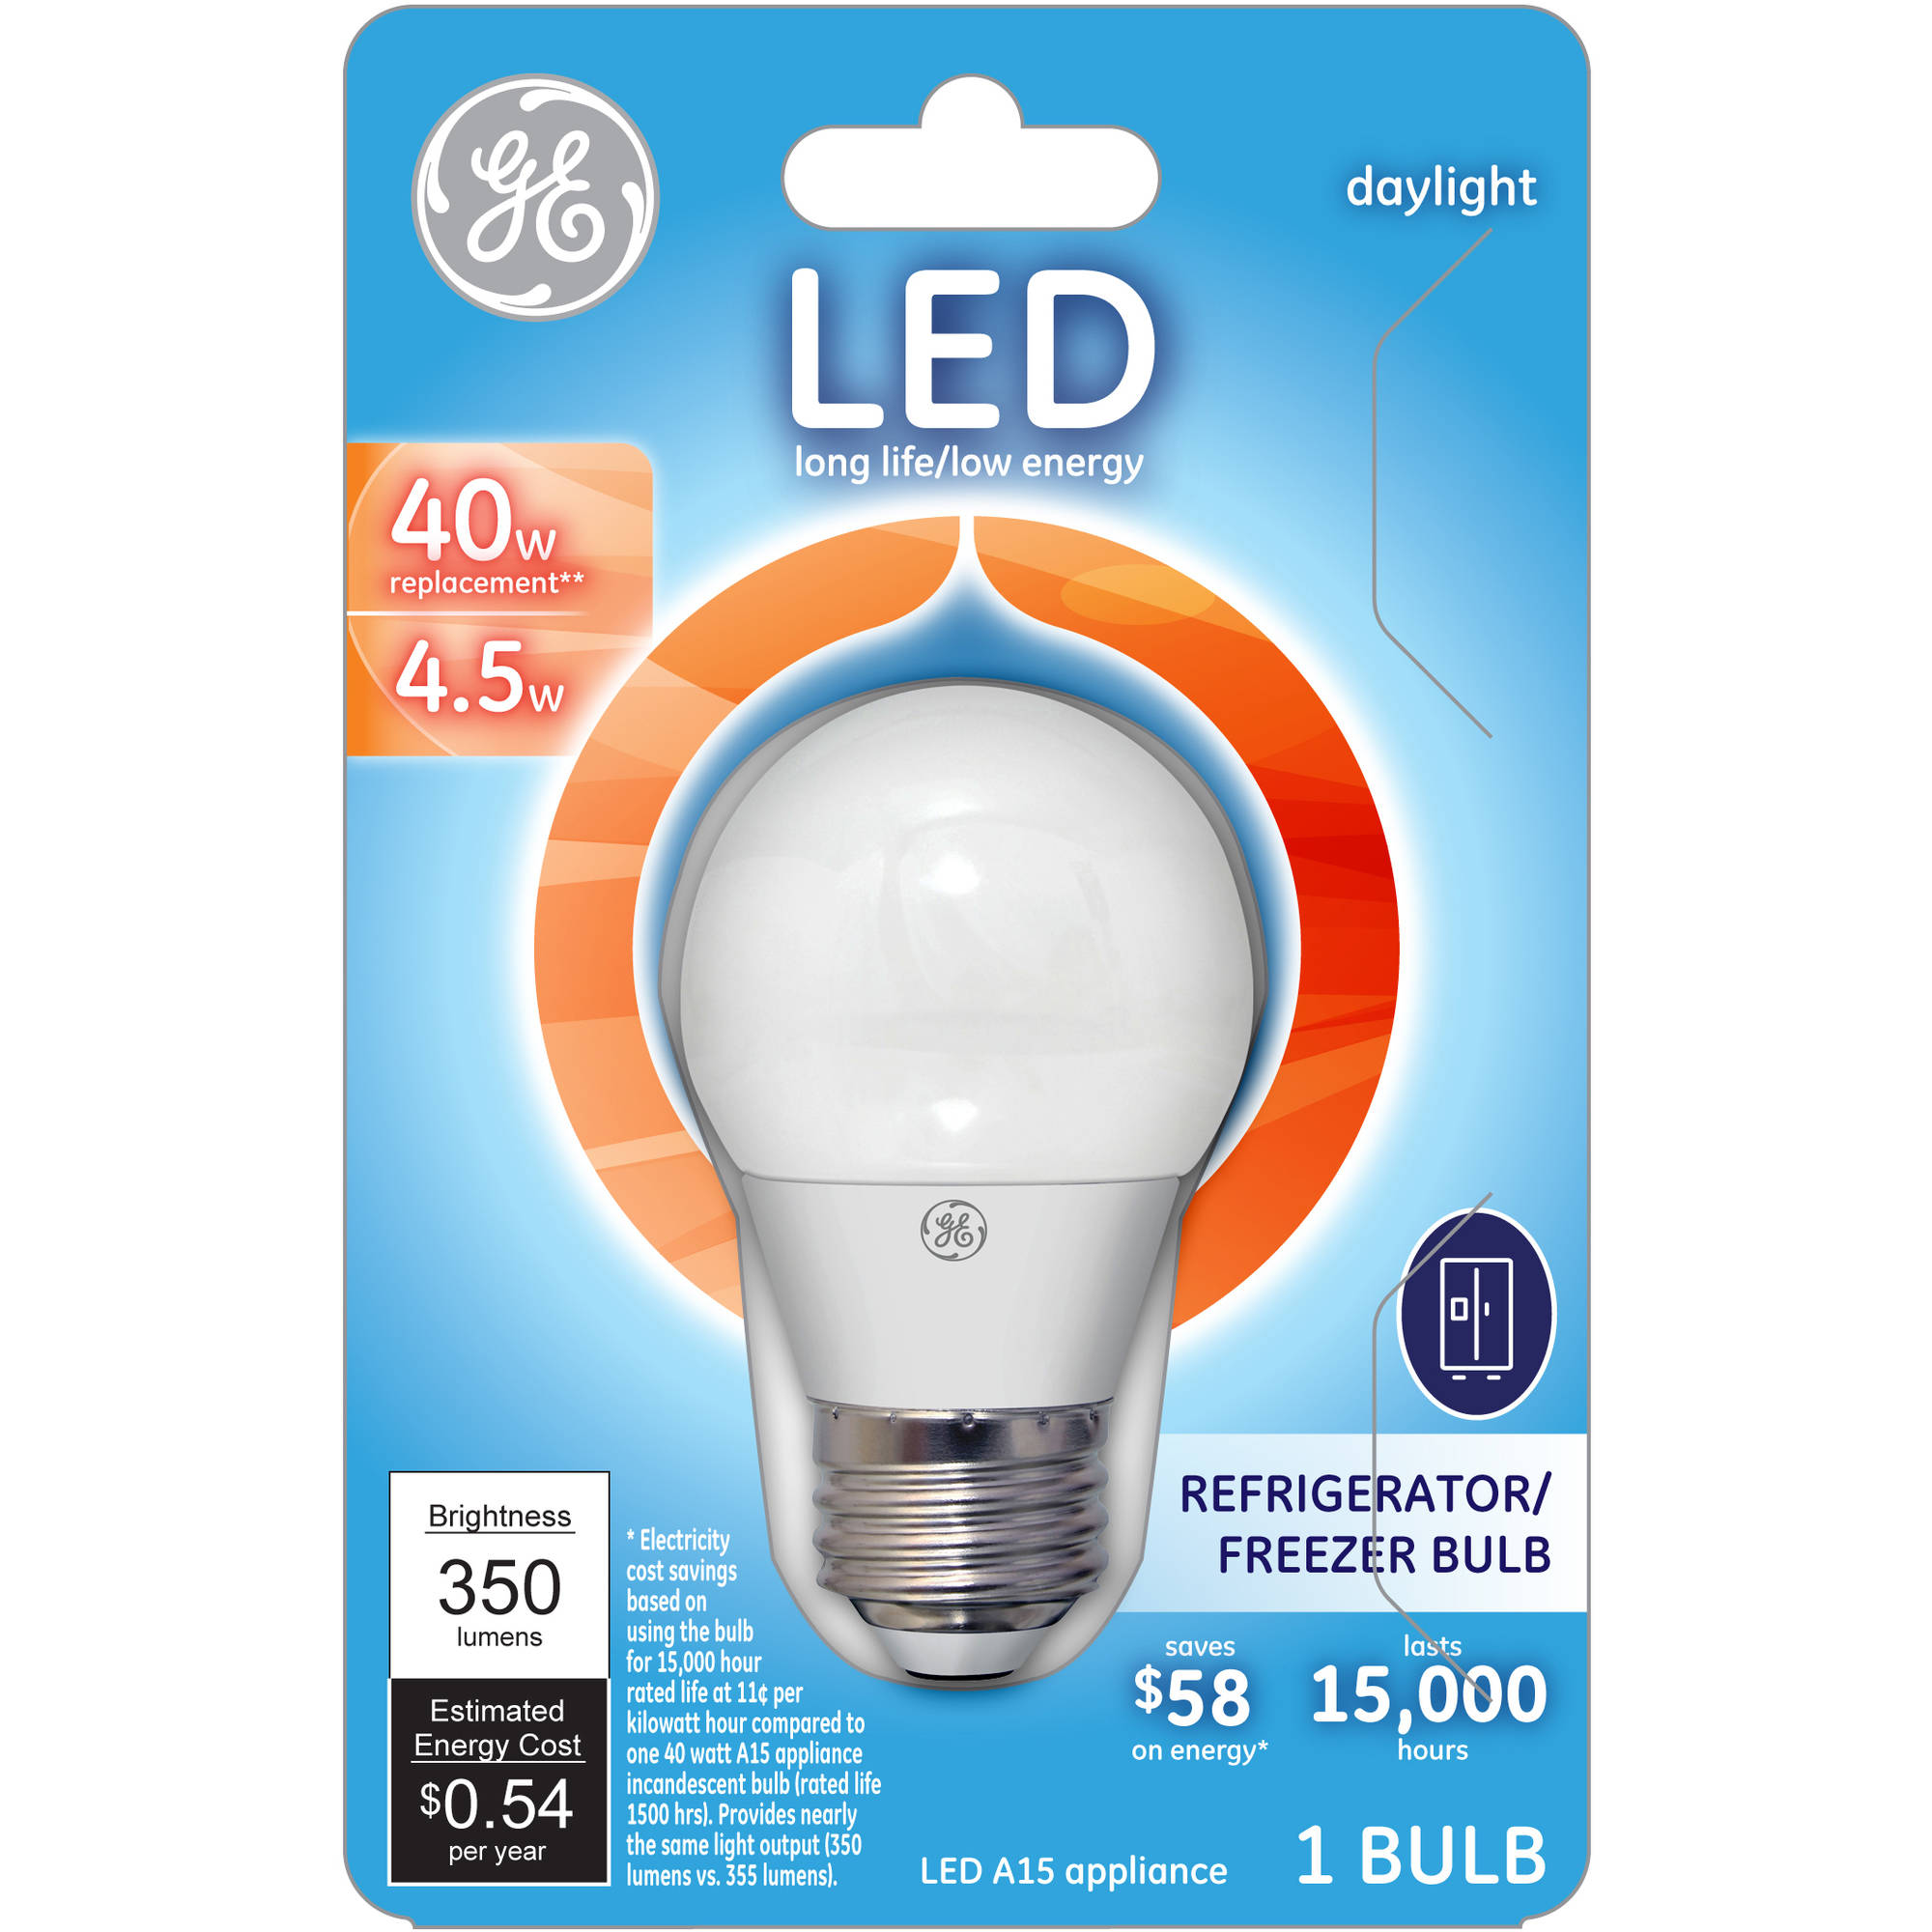 Ge 40w equivalent (uses 4.5w) daylight a15 led appliance bulb bulb 1-pack - Walmart.com  sc 1 st  Walmart & Ge 40w equivalent (uses 4.5w) daylight a15 led appliance bulb bulb ... azcodes.com